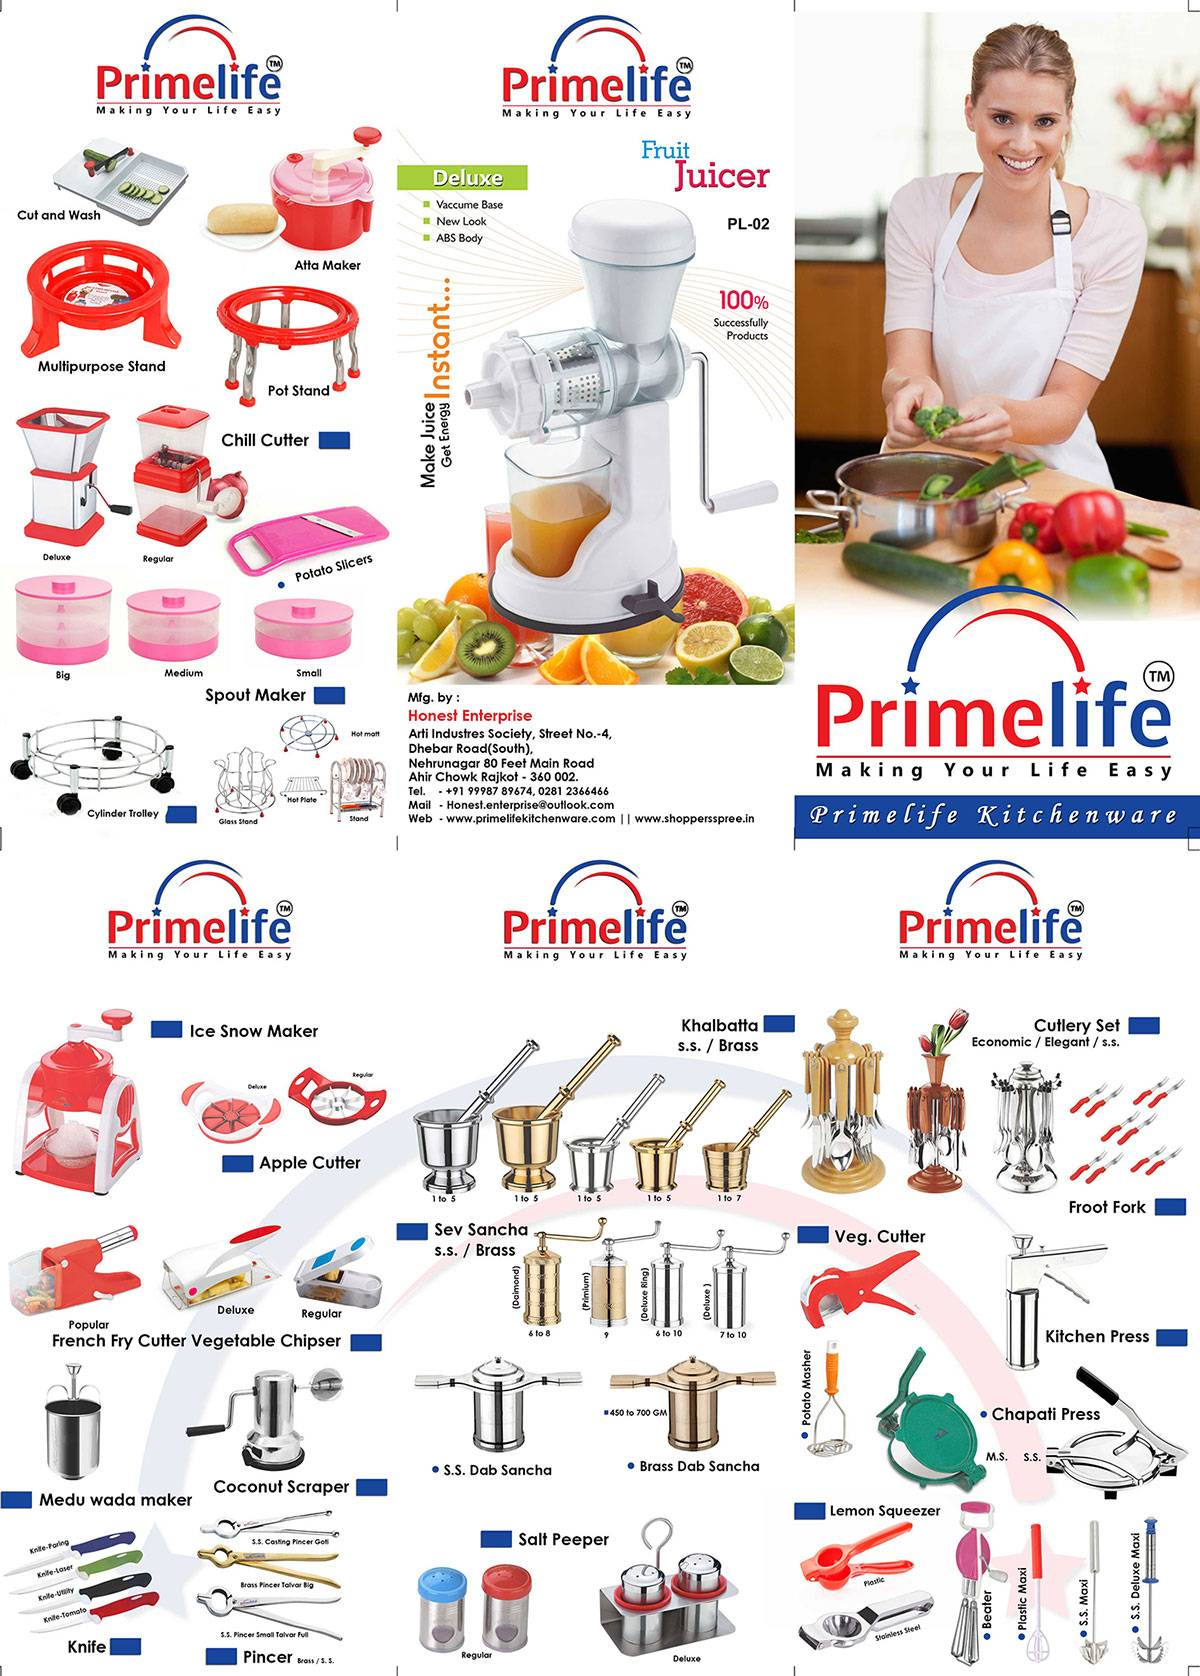 ALL KIND OF KITCHENWARES